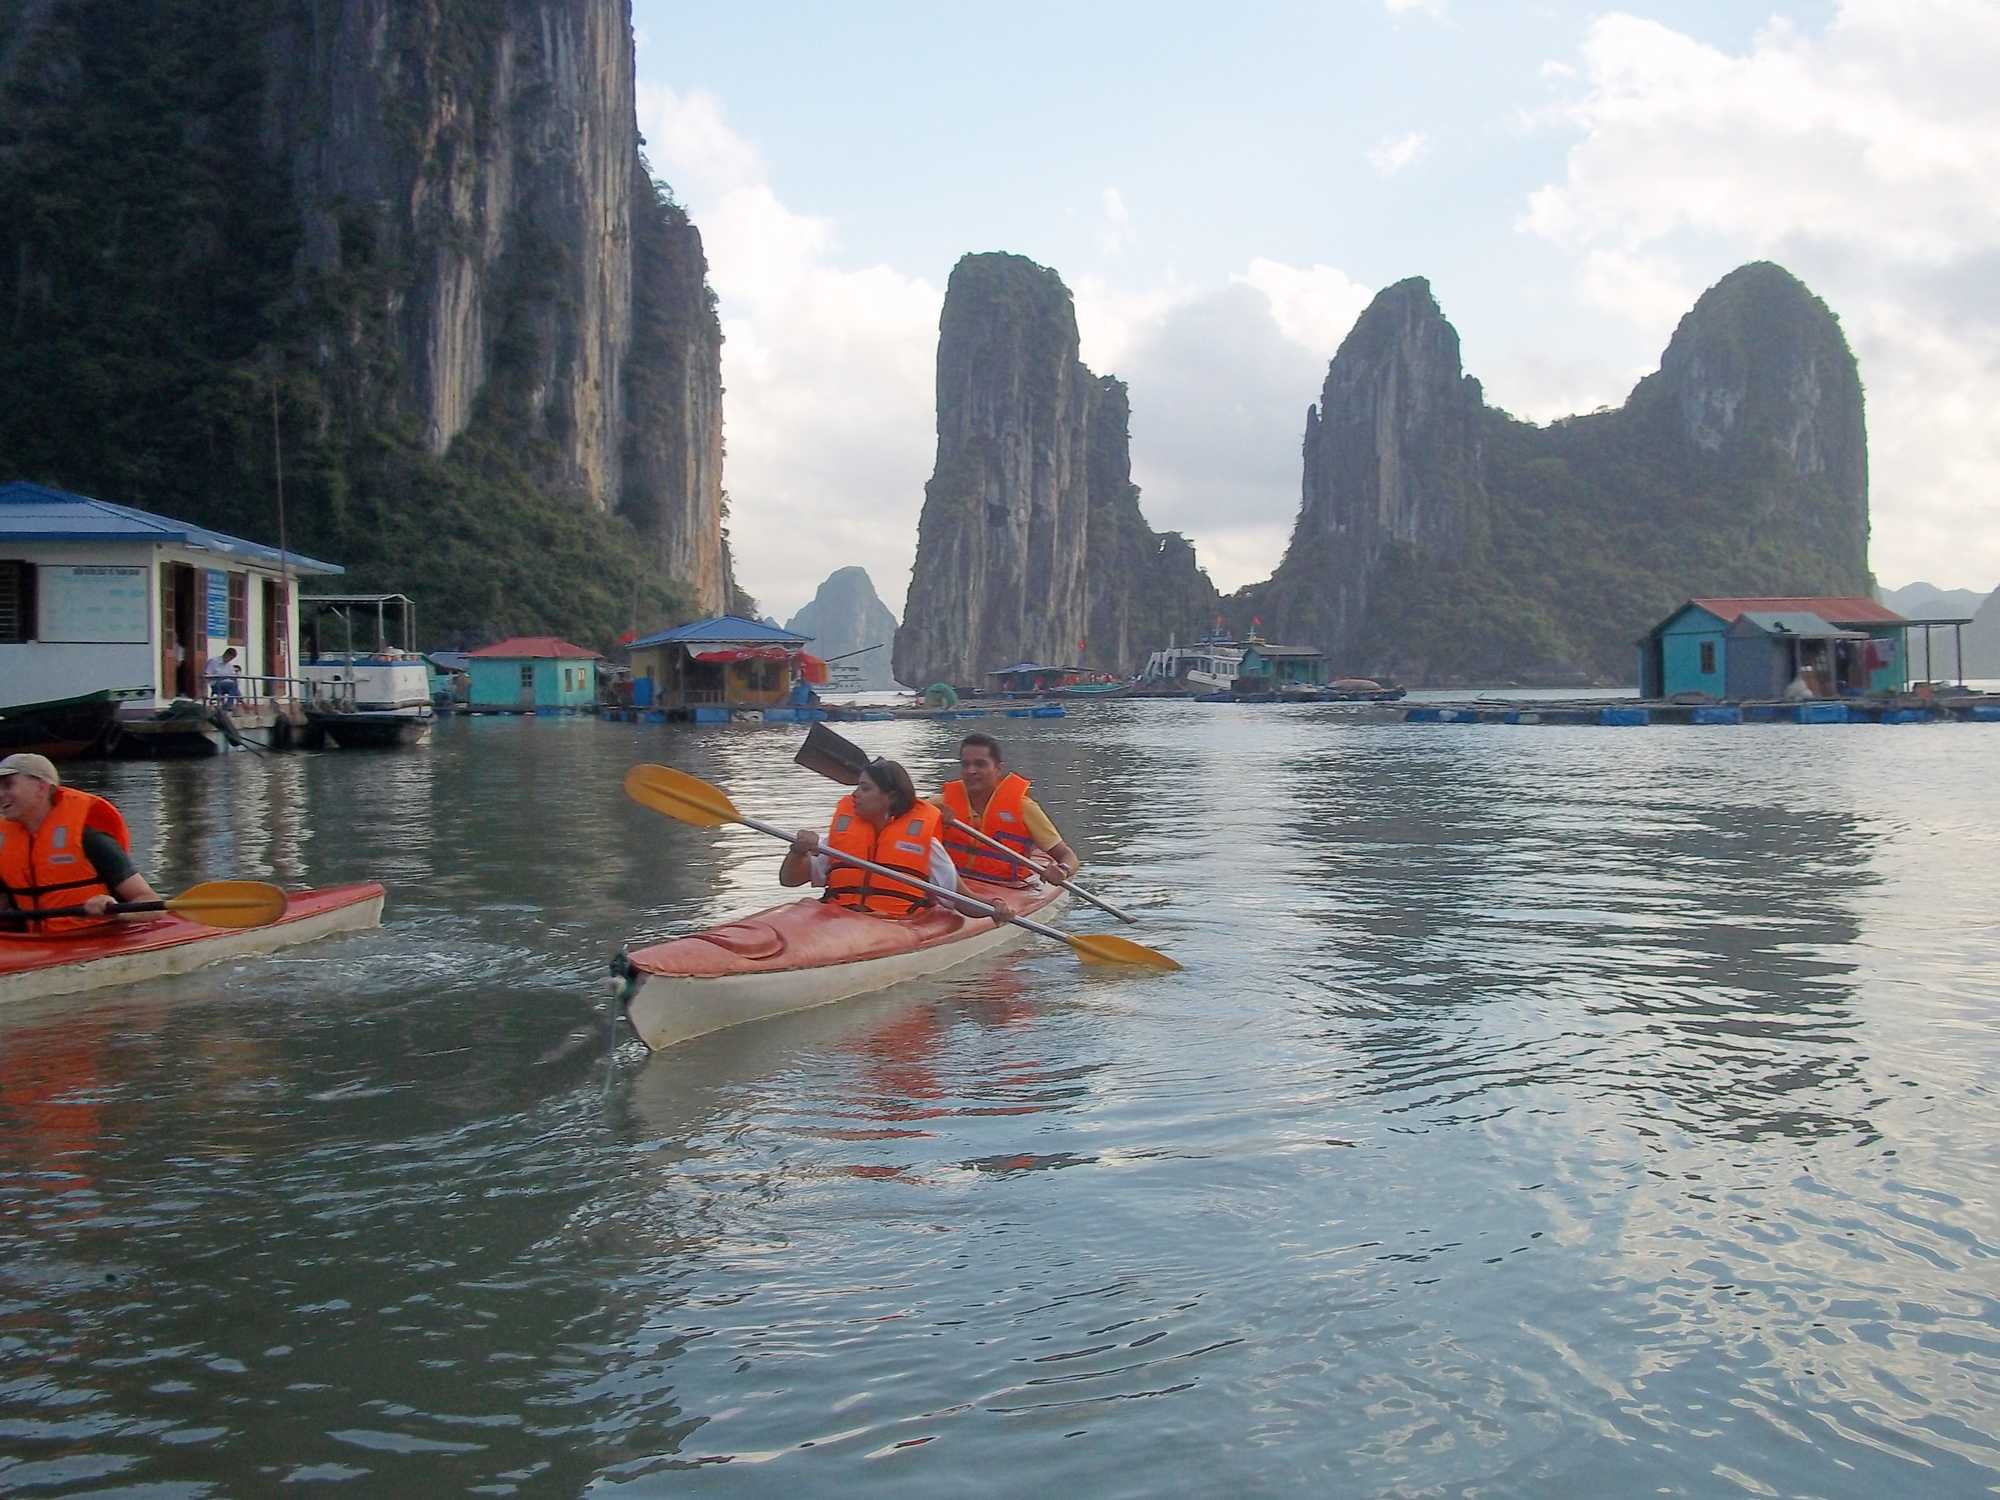 What are things to do in Halong Bay, Vietnam?